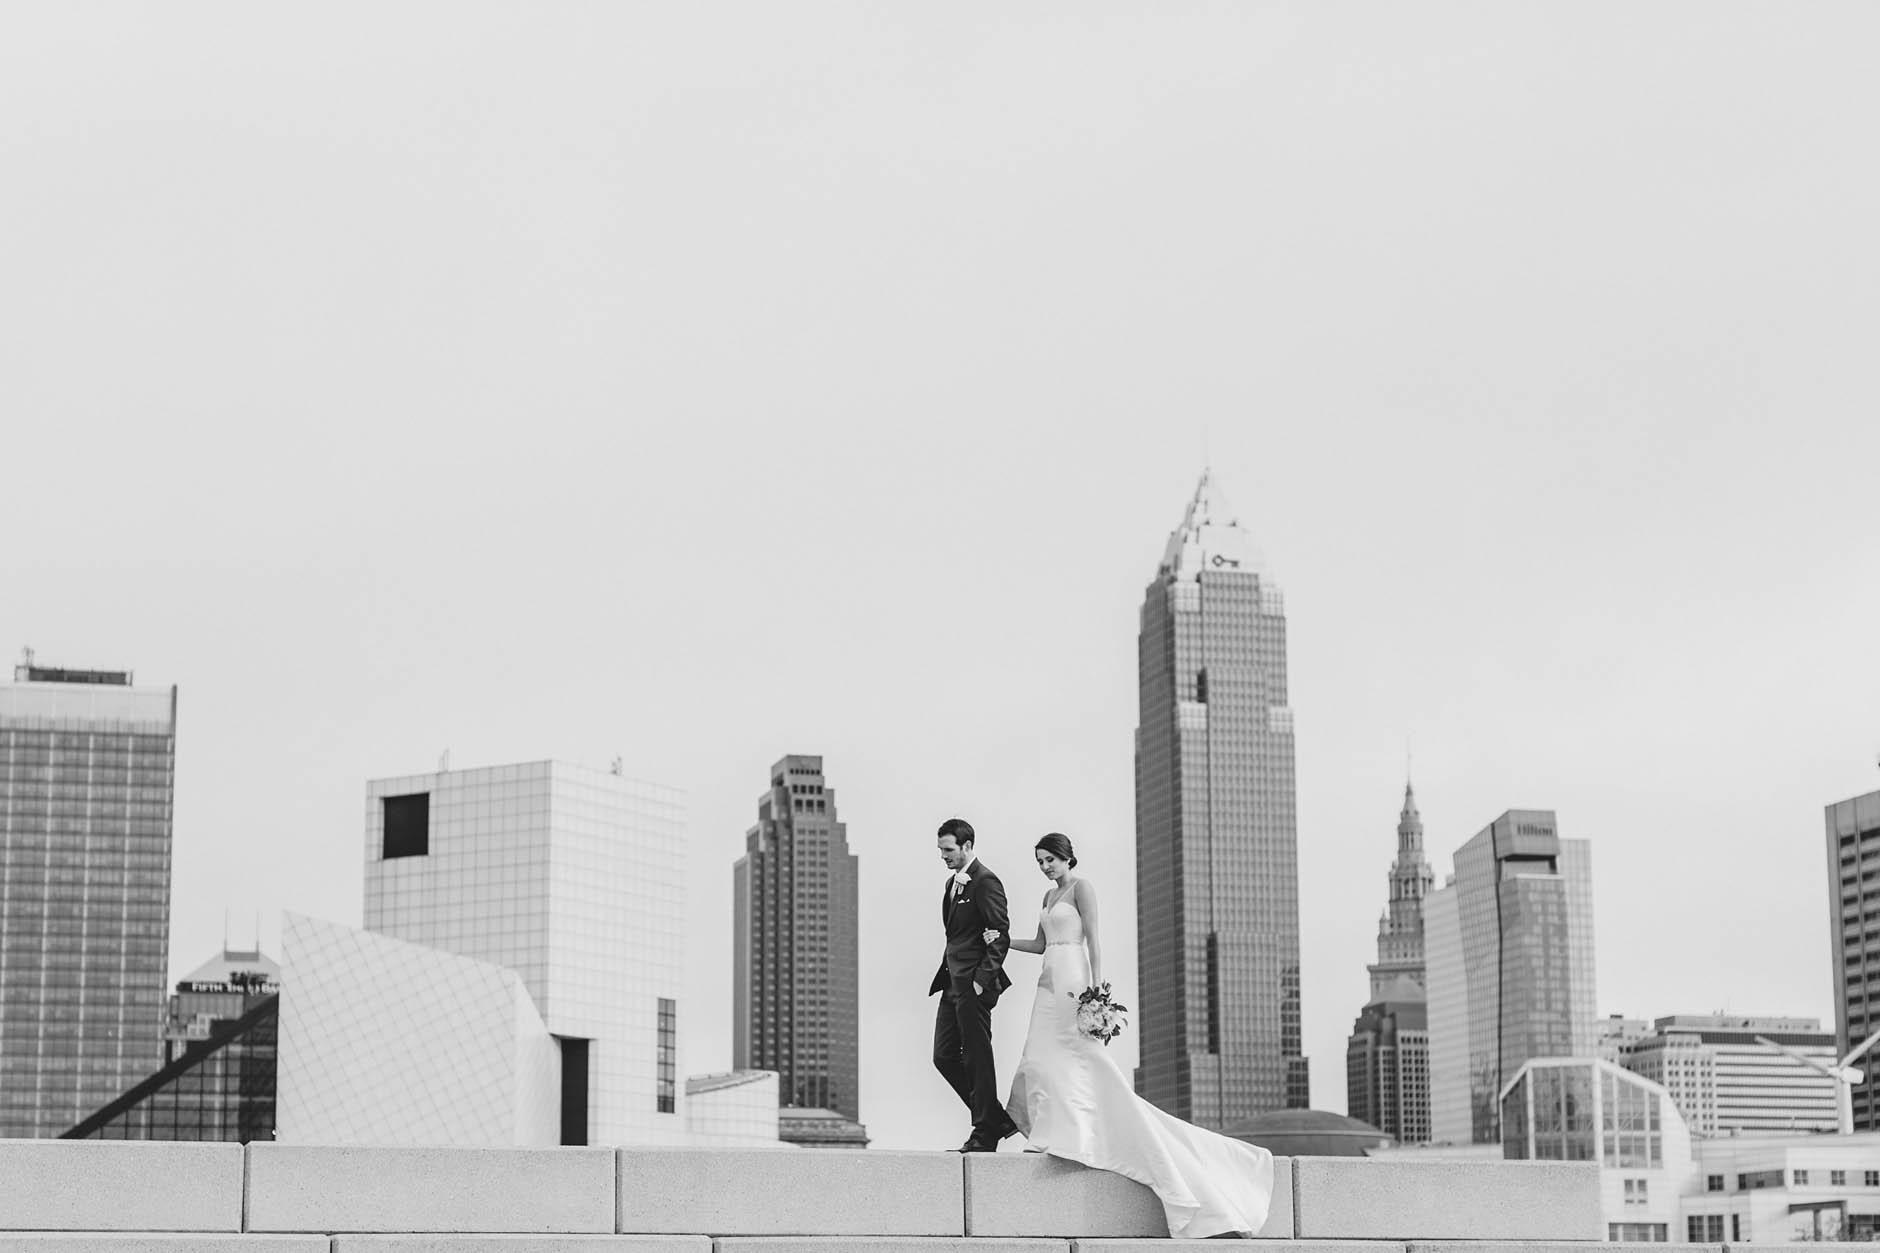 Crown Plaza at Playhouse Square wedding with Carrie & Steven.